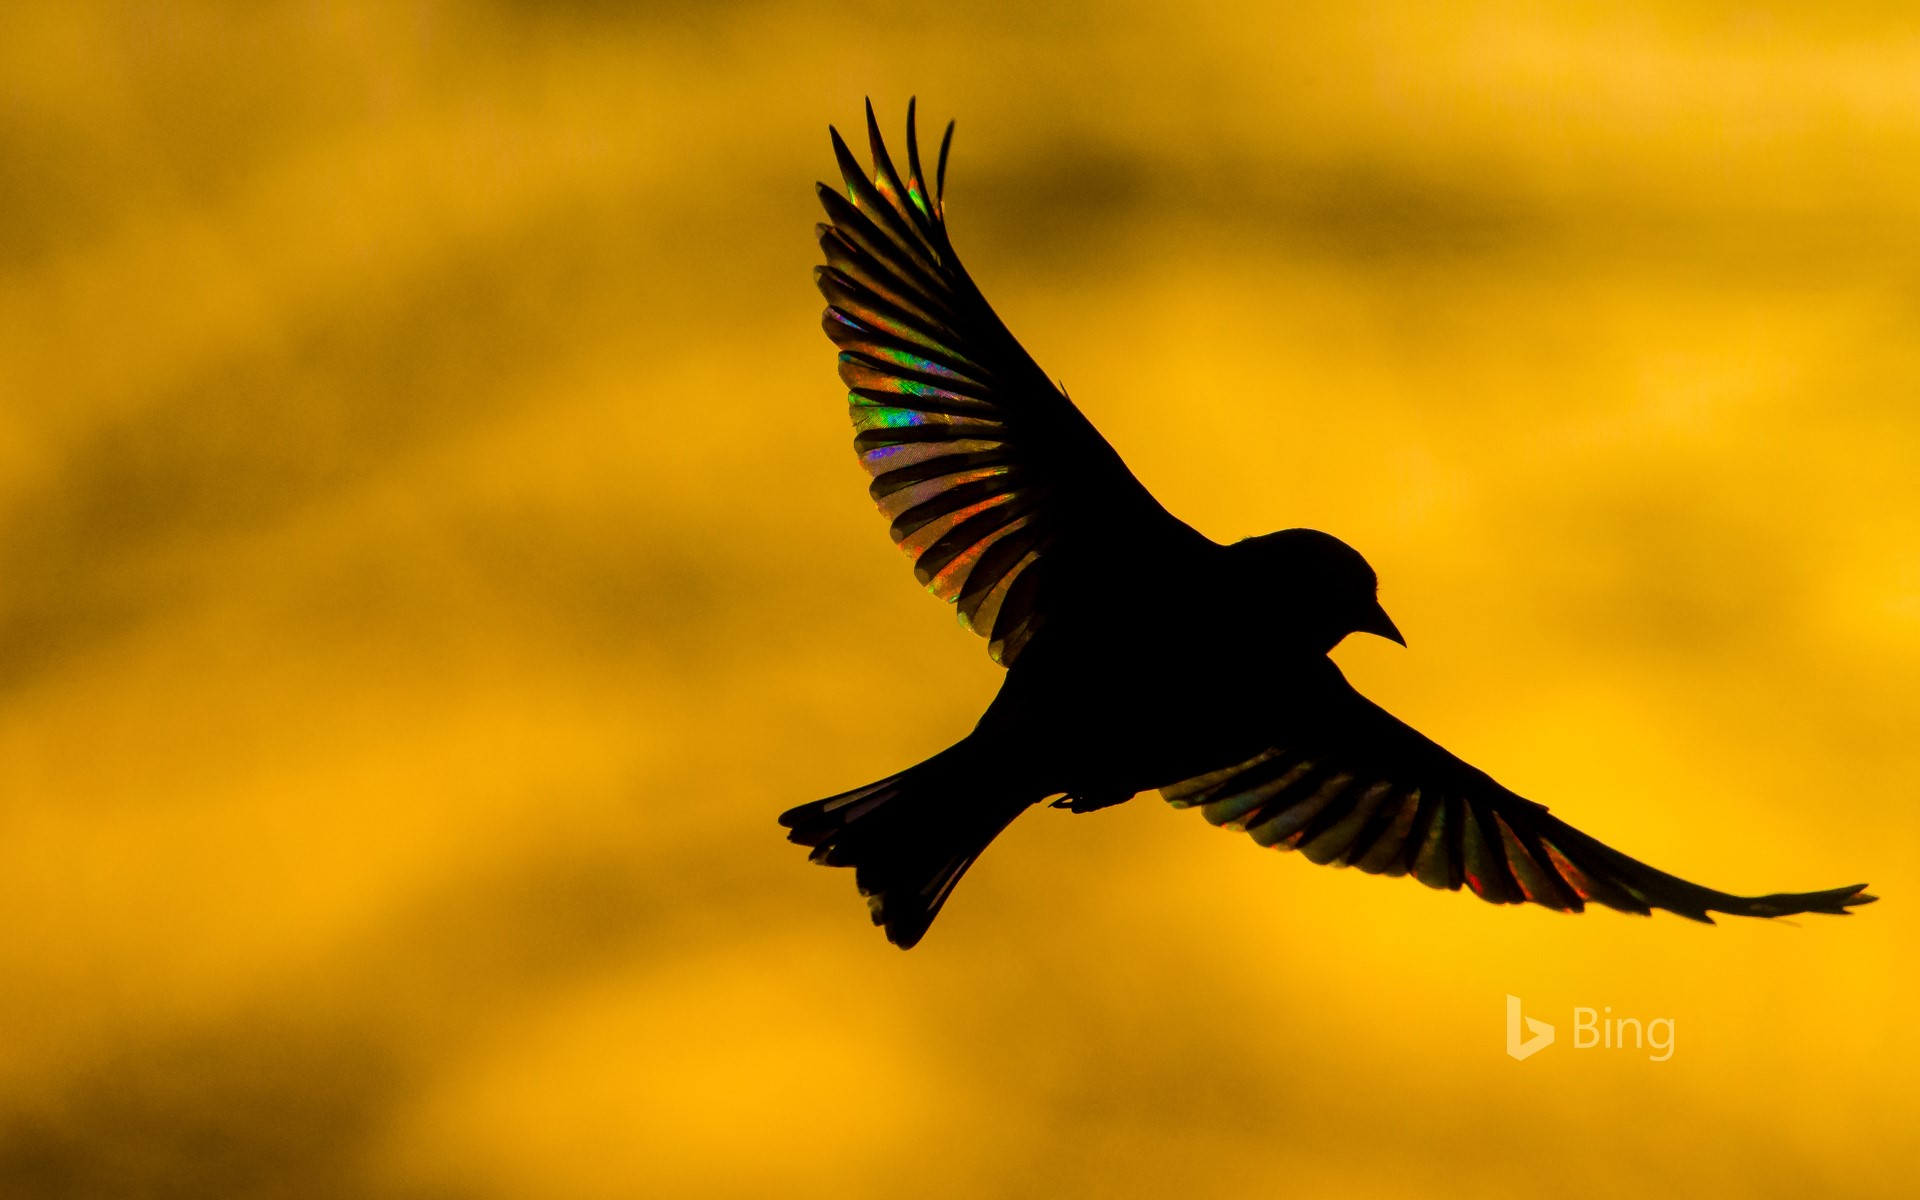 A greenfinch flying at dawn in Monmouthshire, Wales